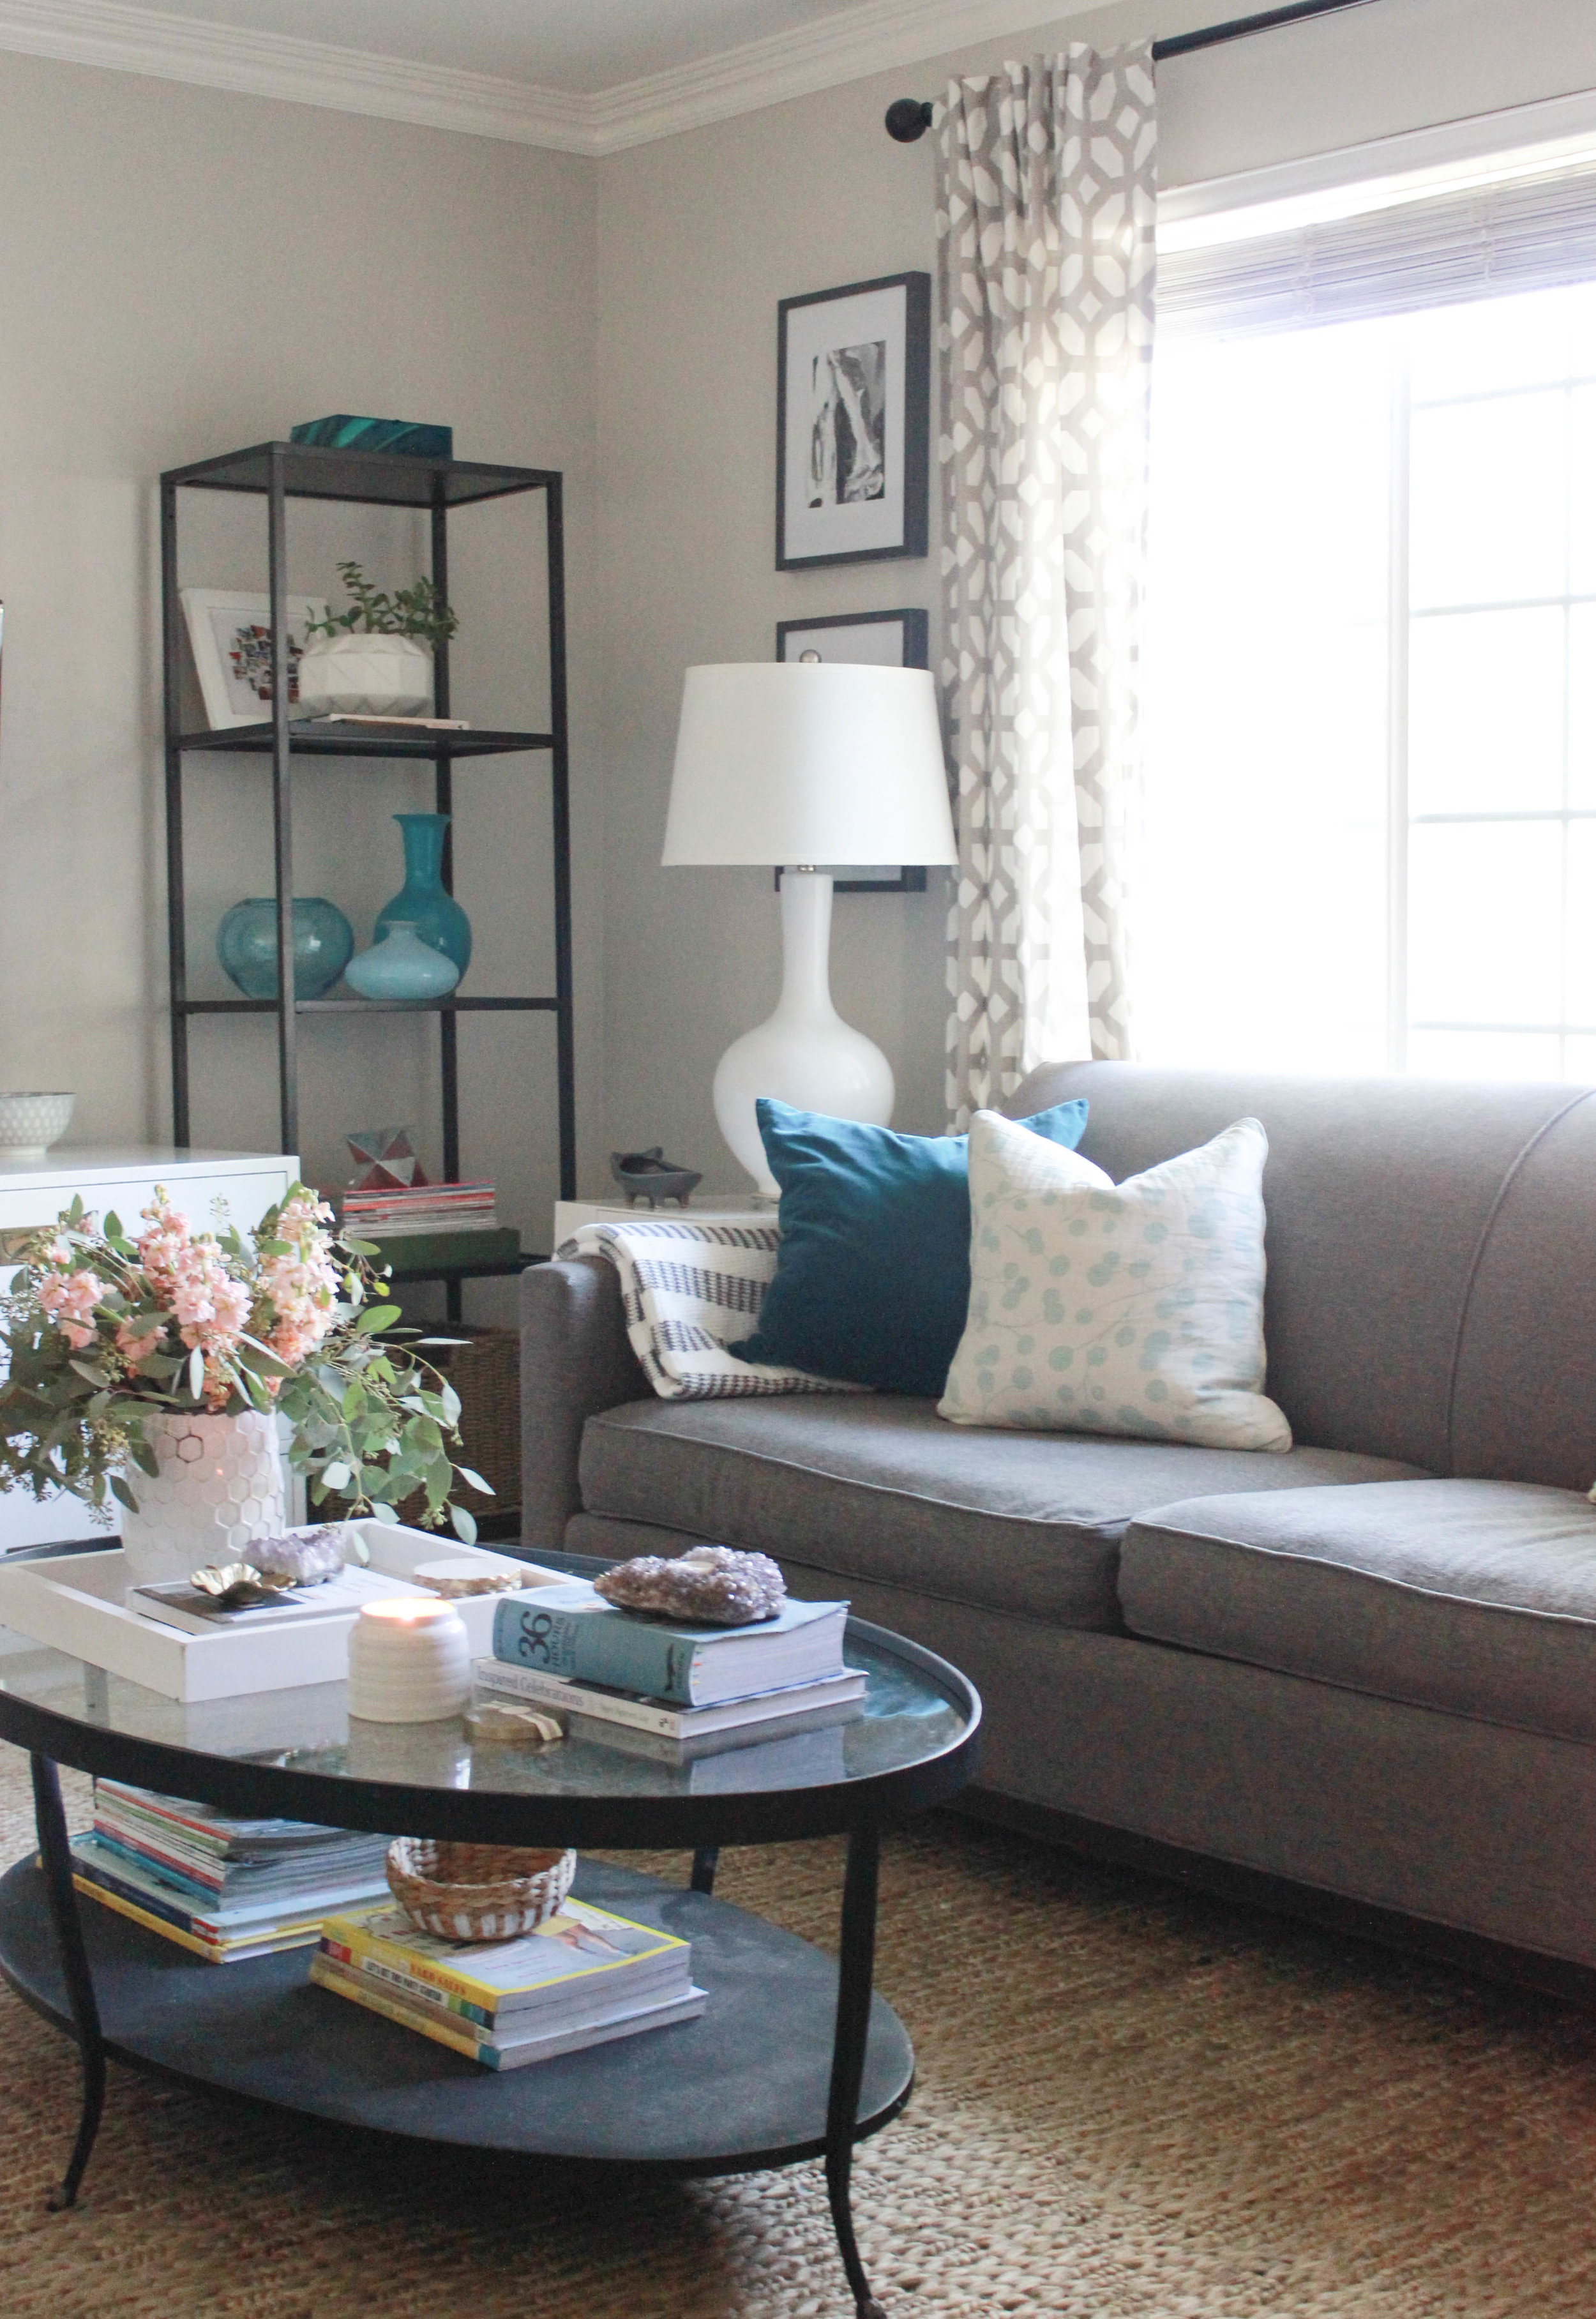 living room rug with grey couch paint colour ideas update jute addition addiction katrina blair our new arrived about three weeks ago and i wanted to make sure absolutely loved the before sharing all deets on blog